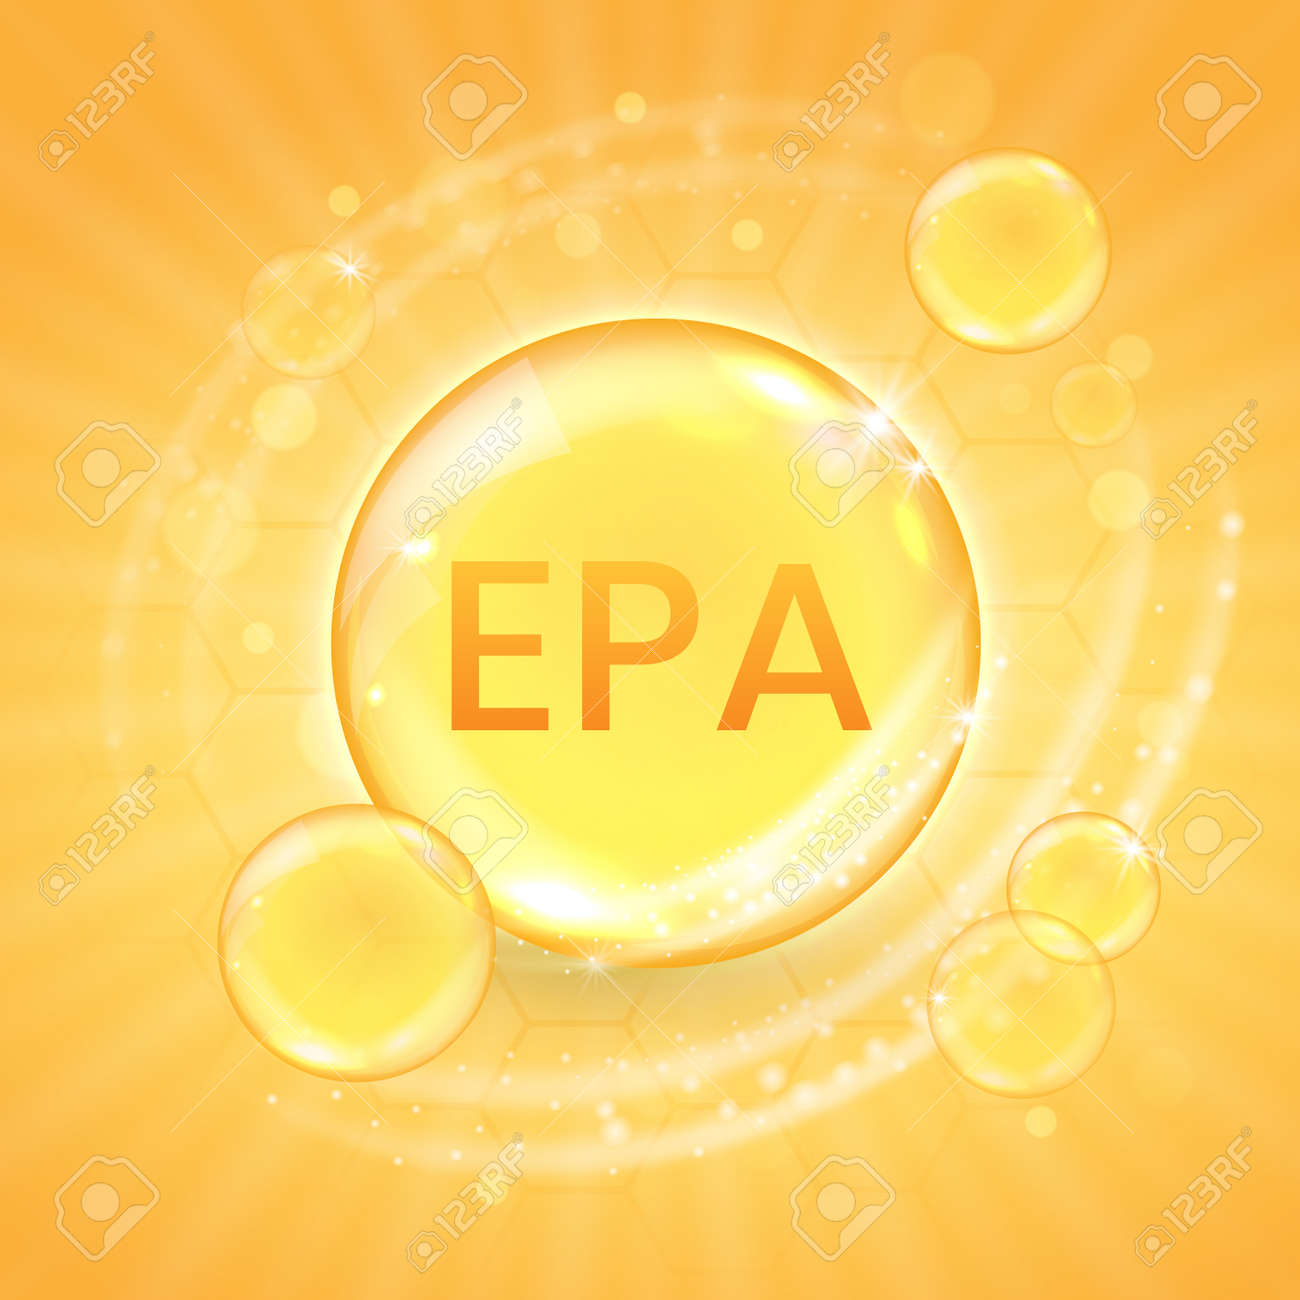 EPA from omega-3 fatty acid supplement, shiny oil vitamin capsule. Fish oil droplet design template for advertisement or branding. Realistic vector illustration of golden essence bubble - 164779779